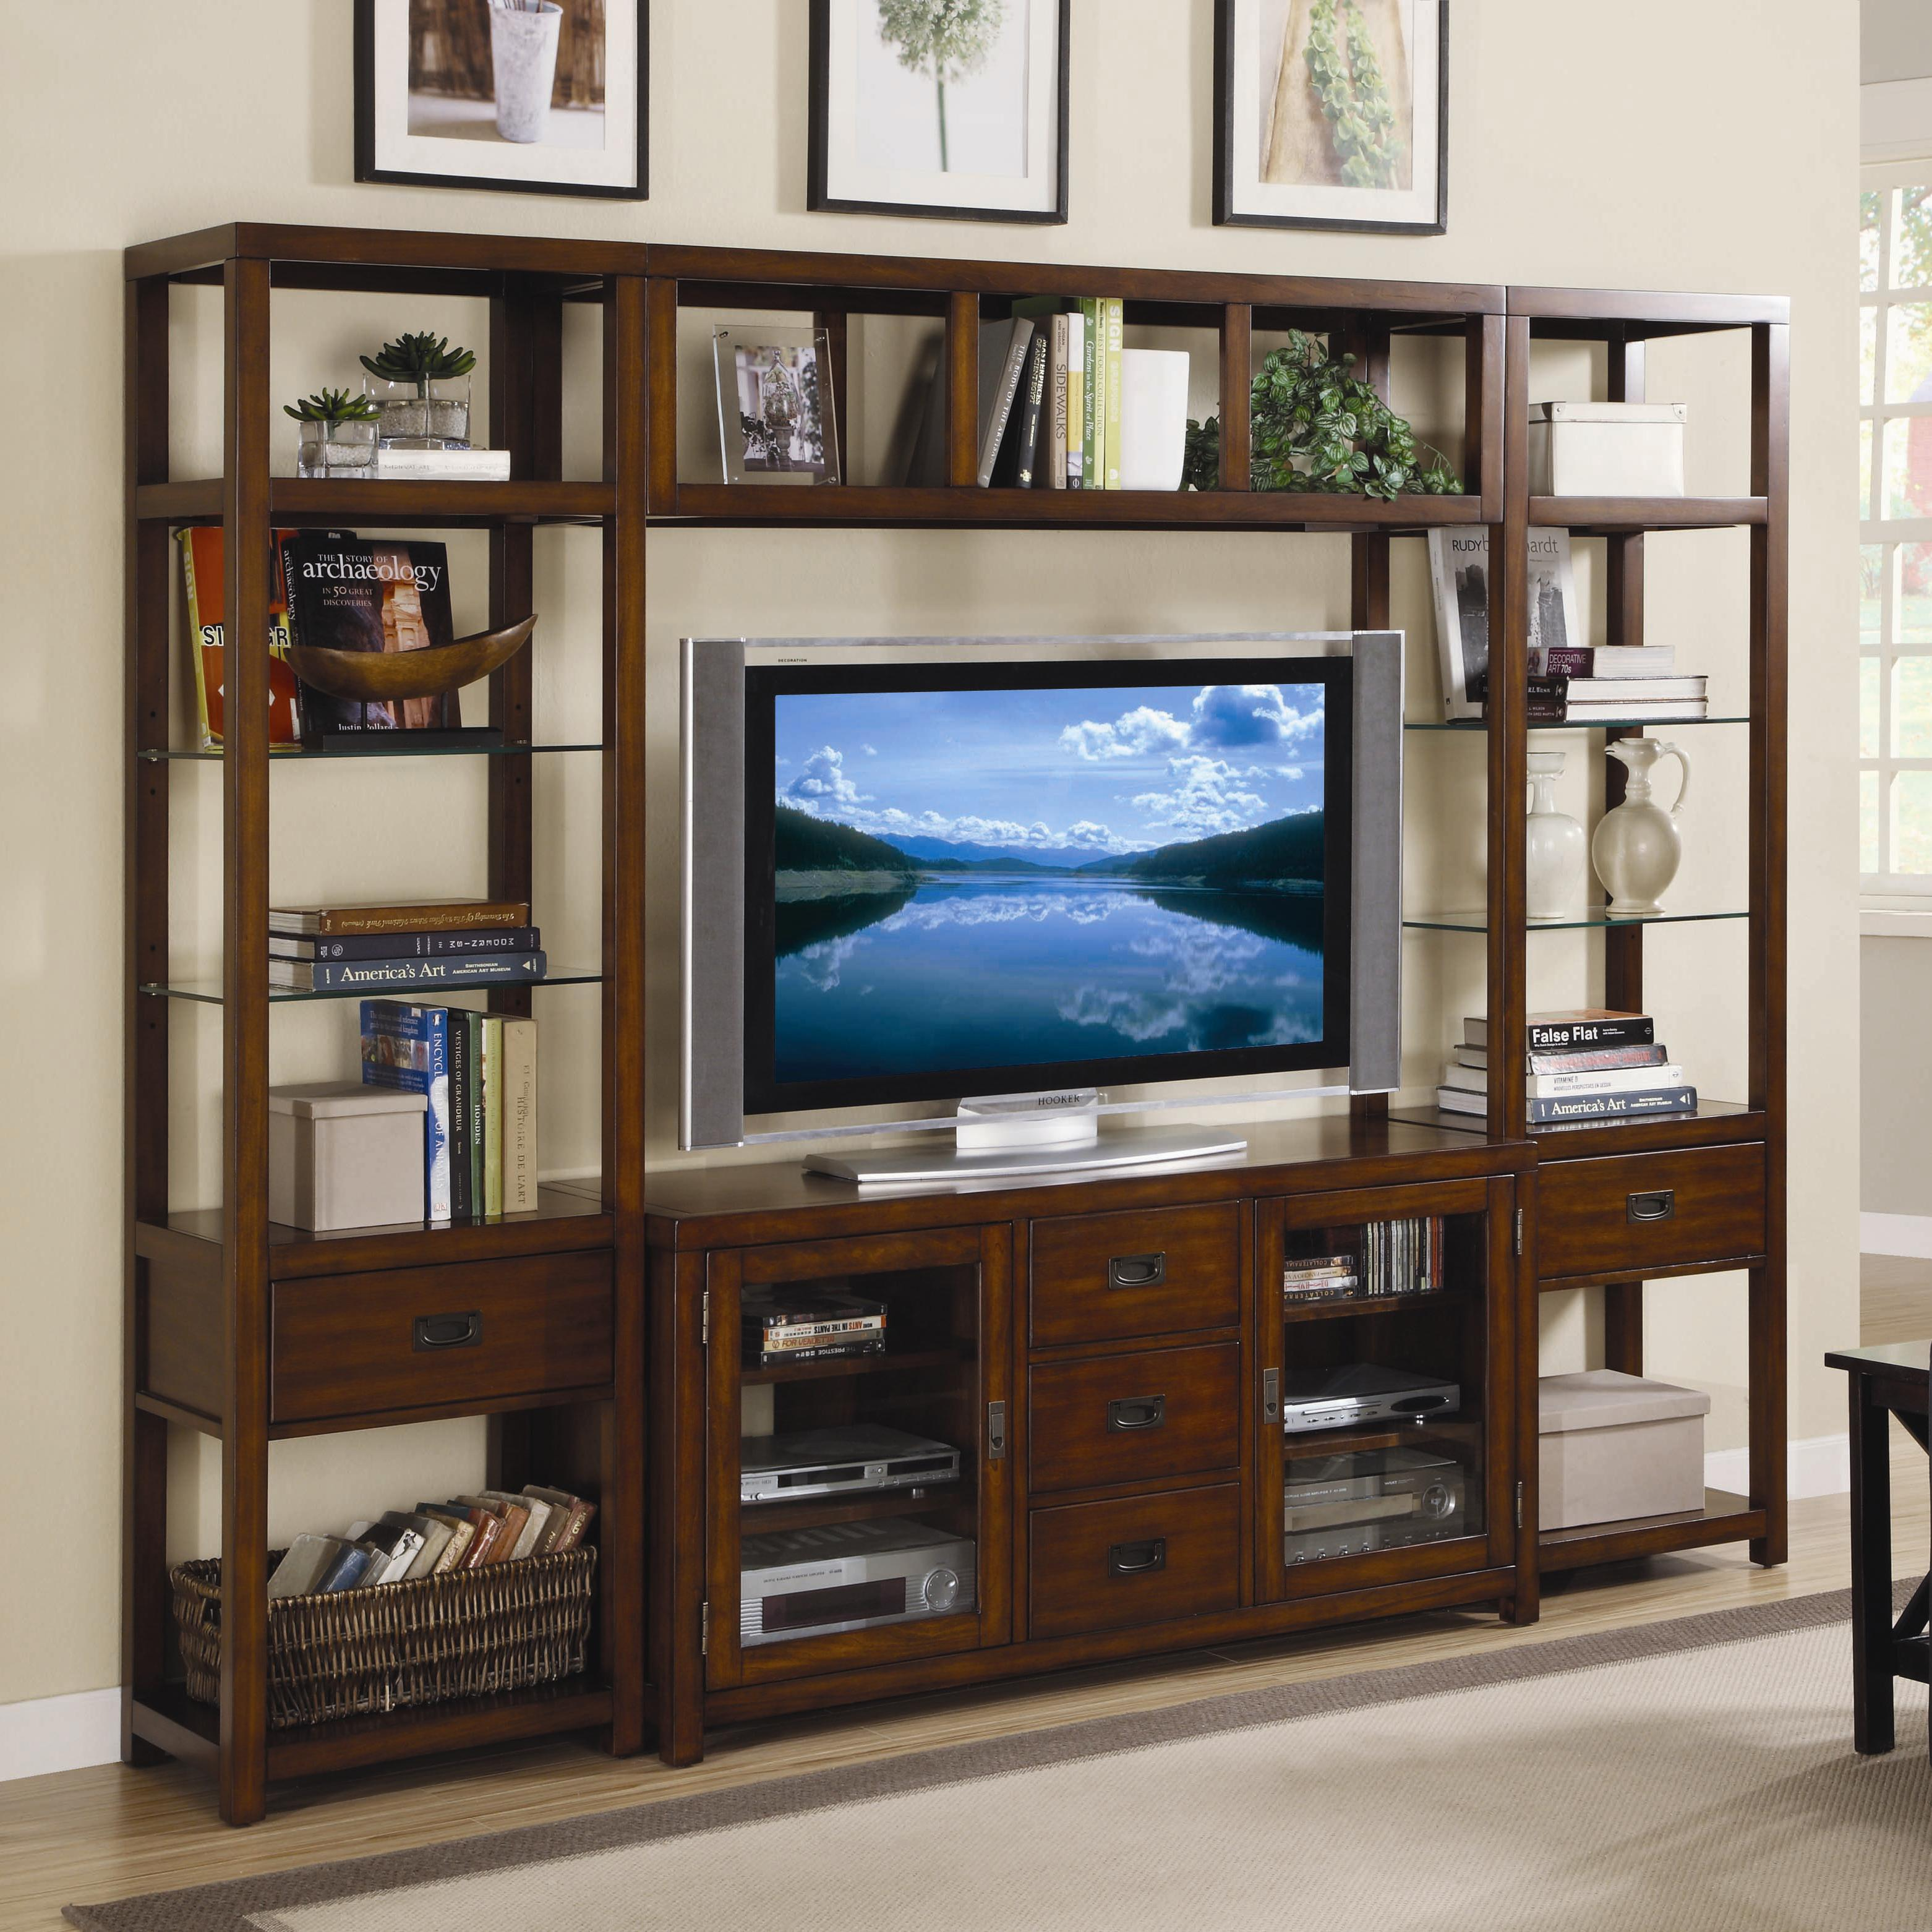 Charmant Wall Unit